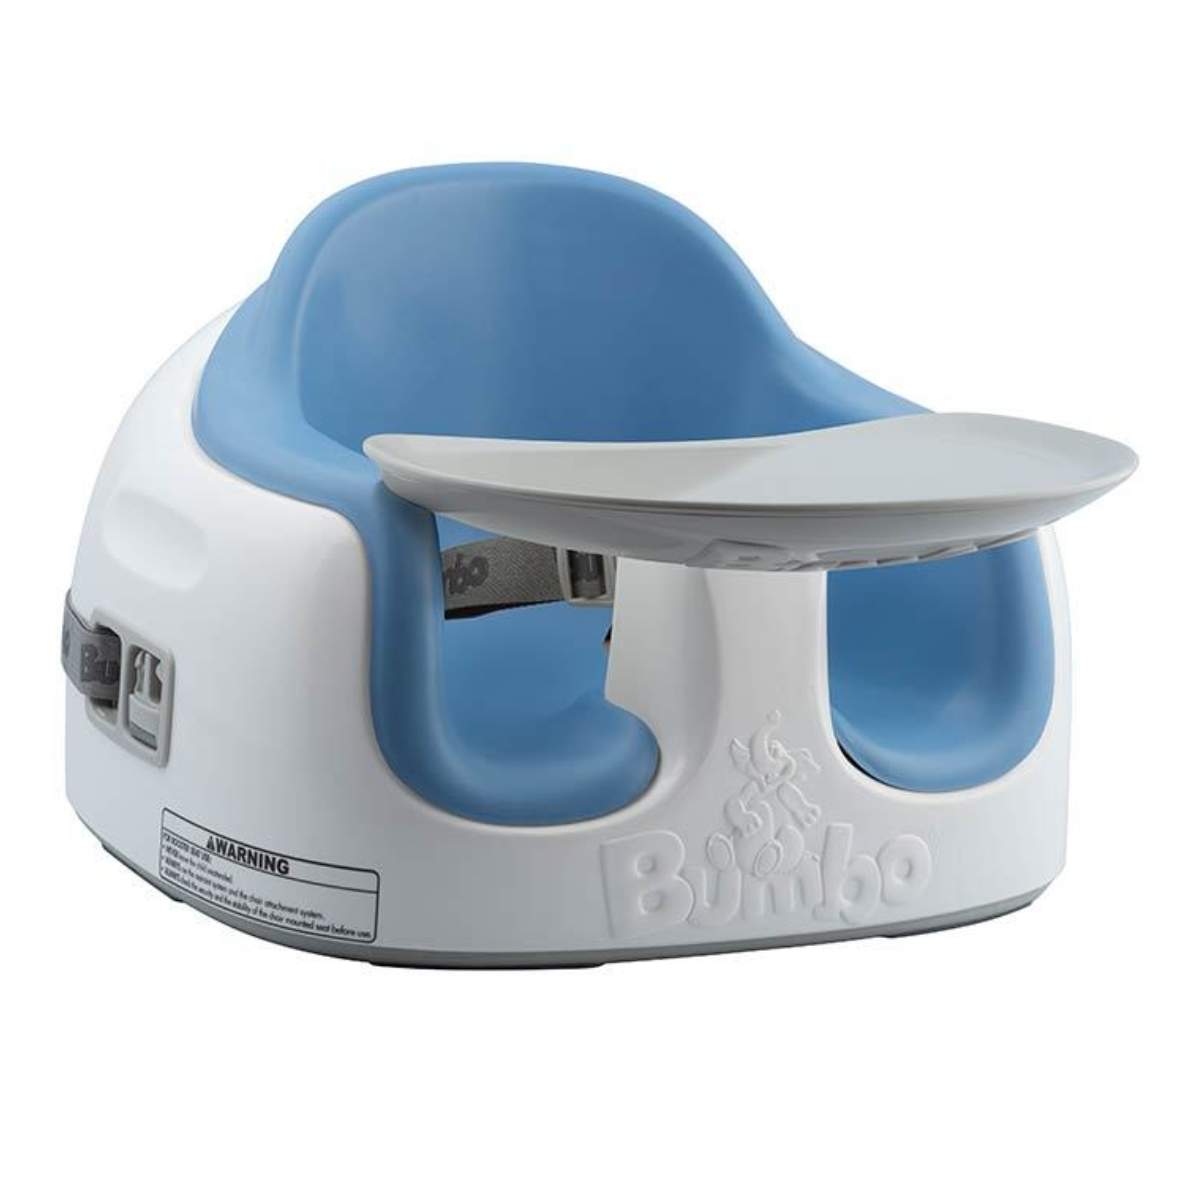 Bumbo Multi Seat-Powder Blue (NEW)